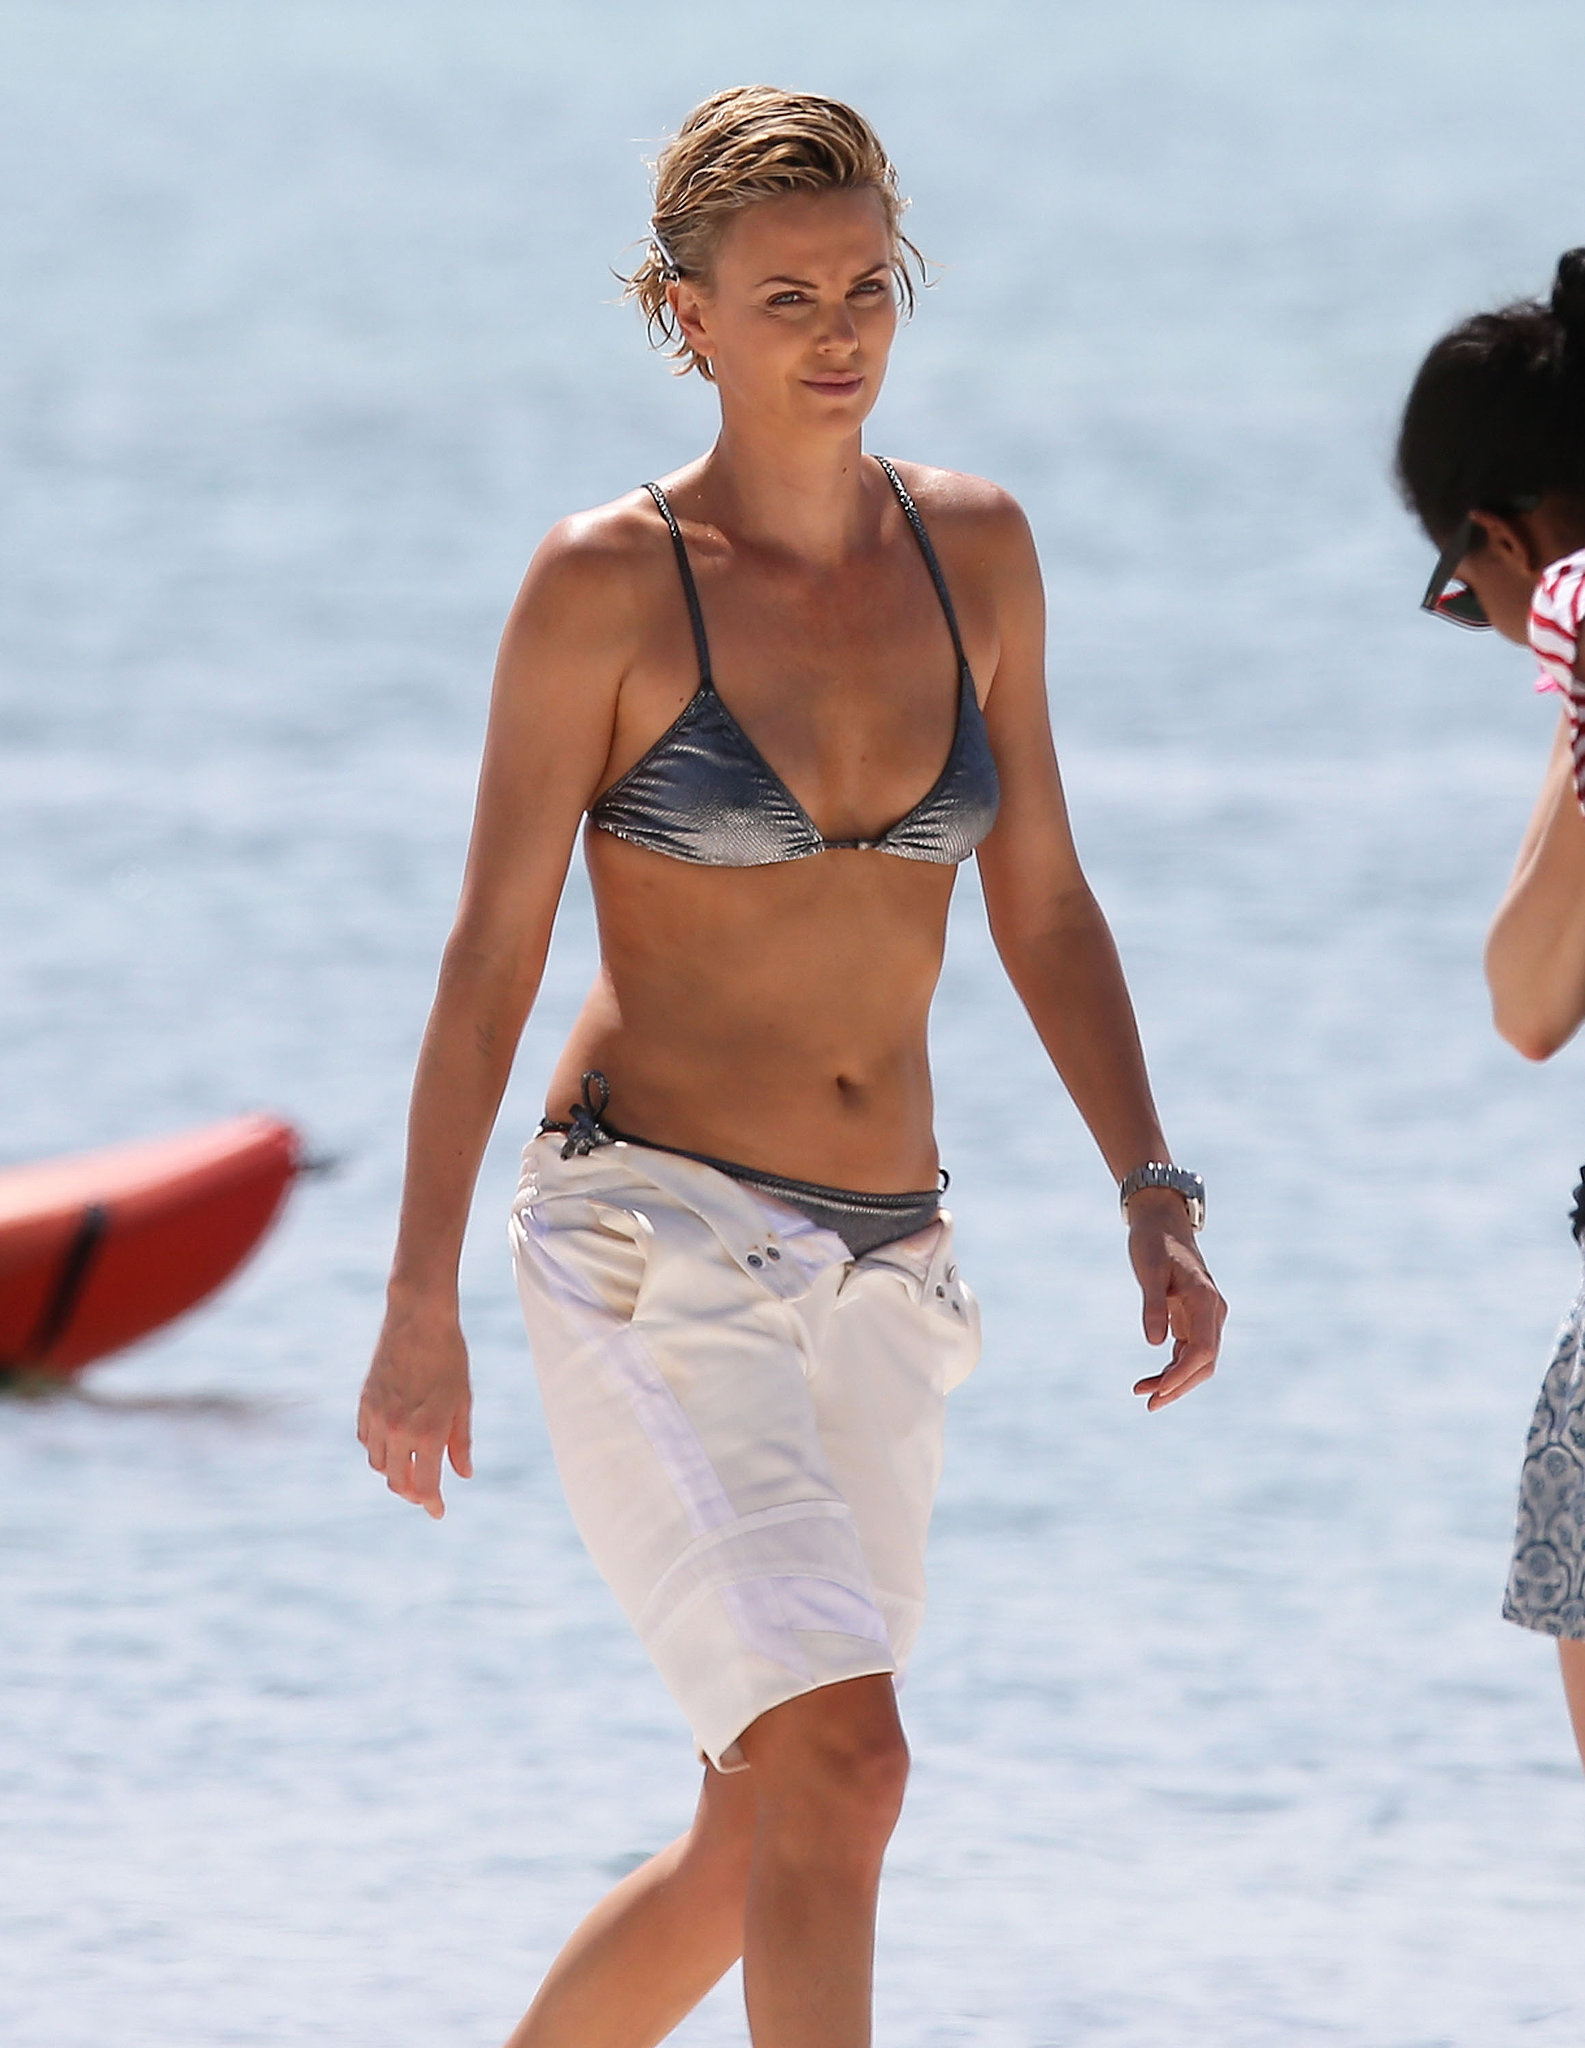 In March 2014, Charlize Theron wore a bikini in Miami for a photoshoot.